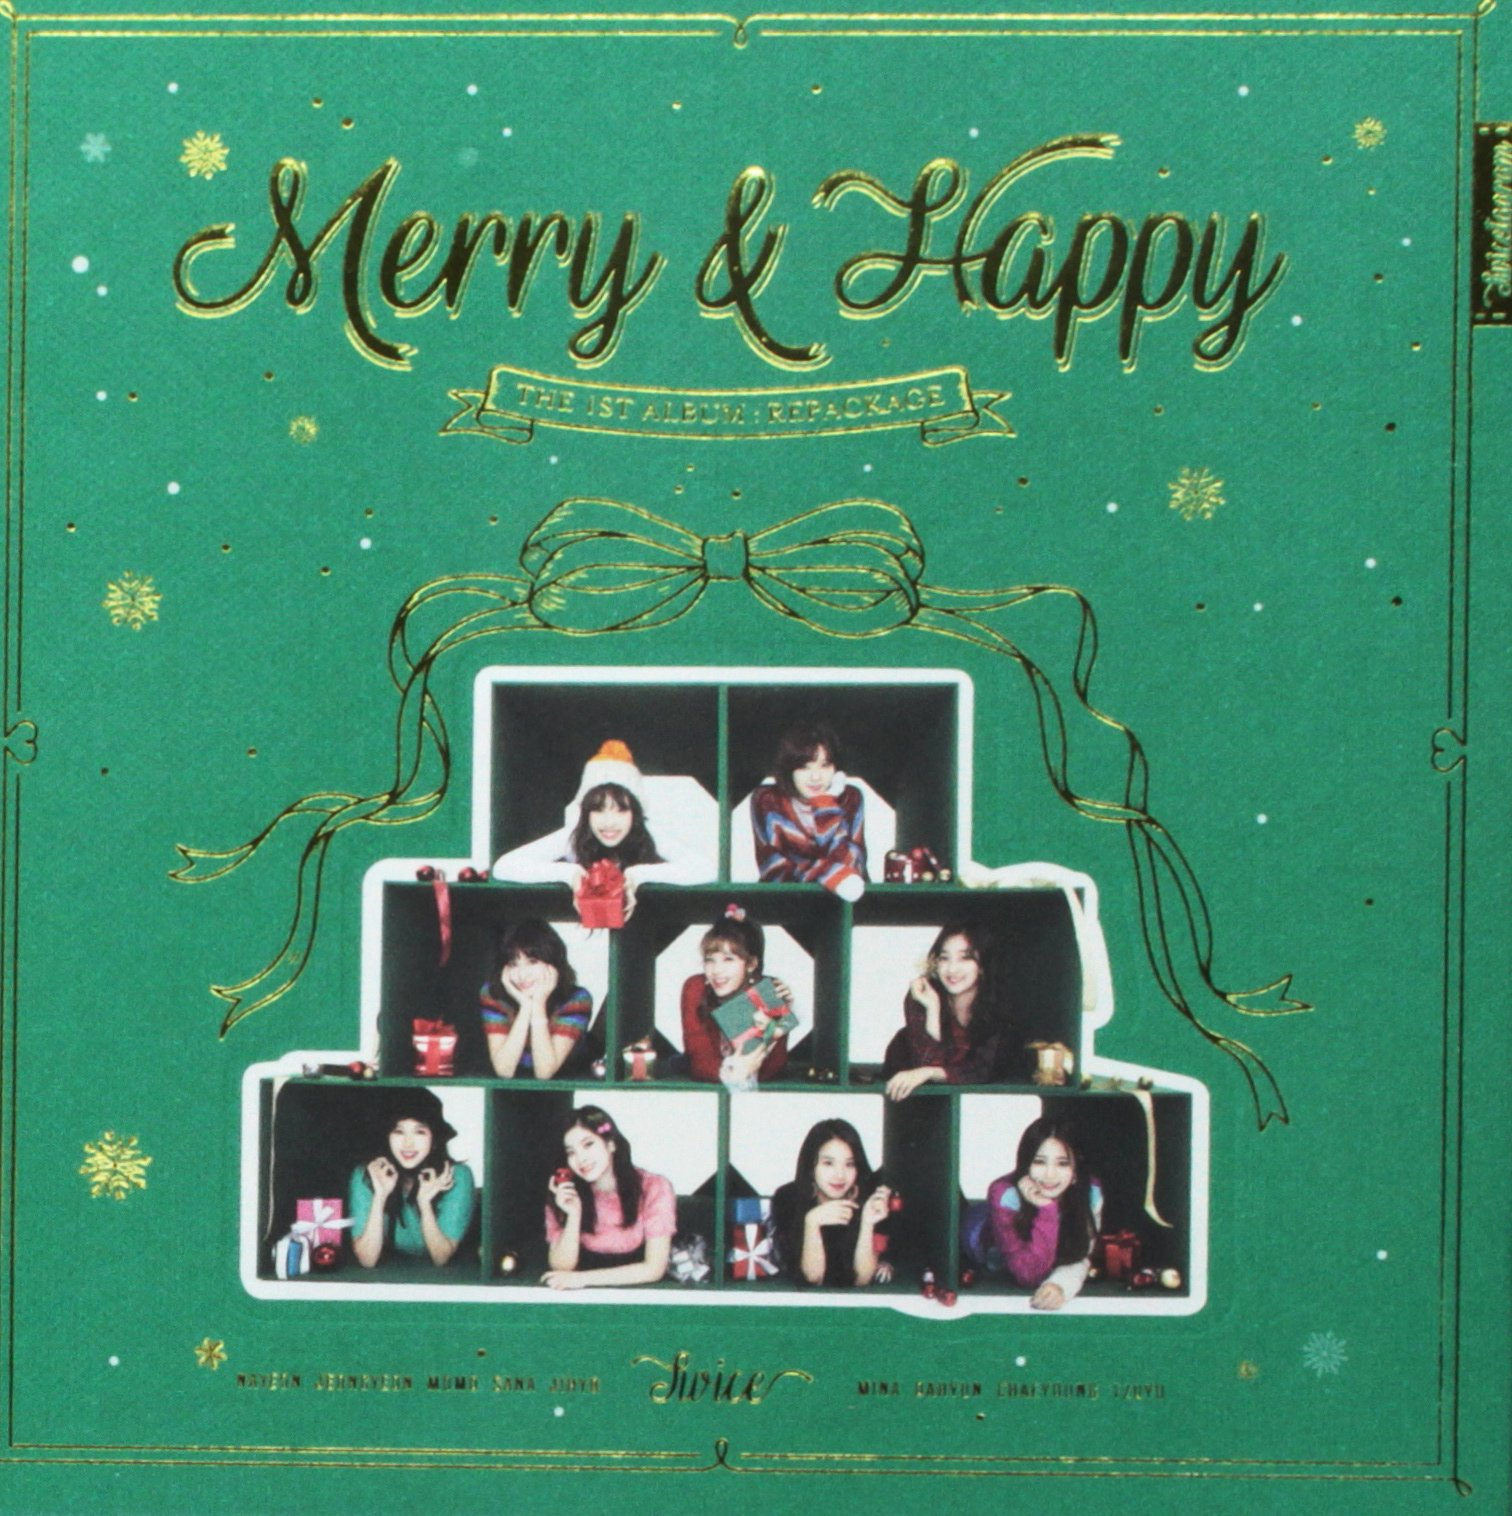 Merry & Happy (Vol 2) by TWICE